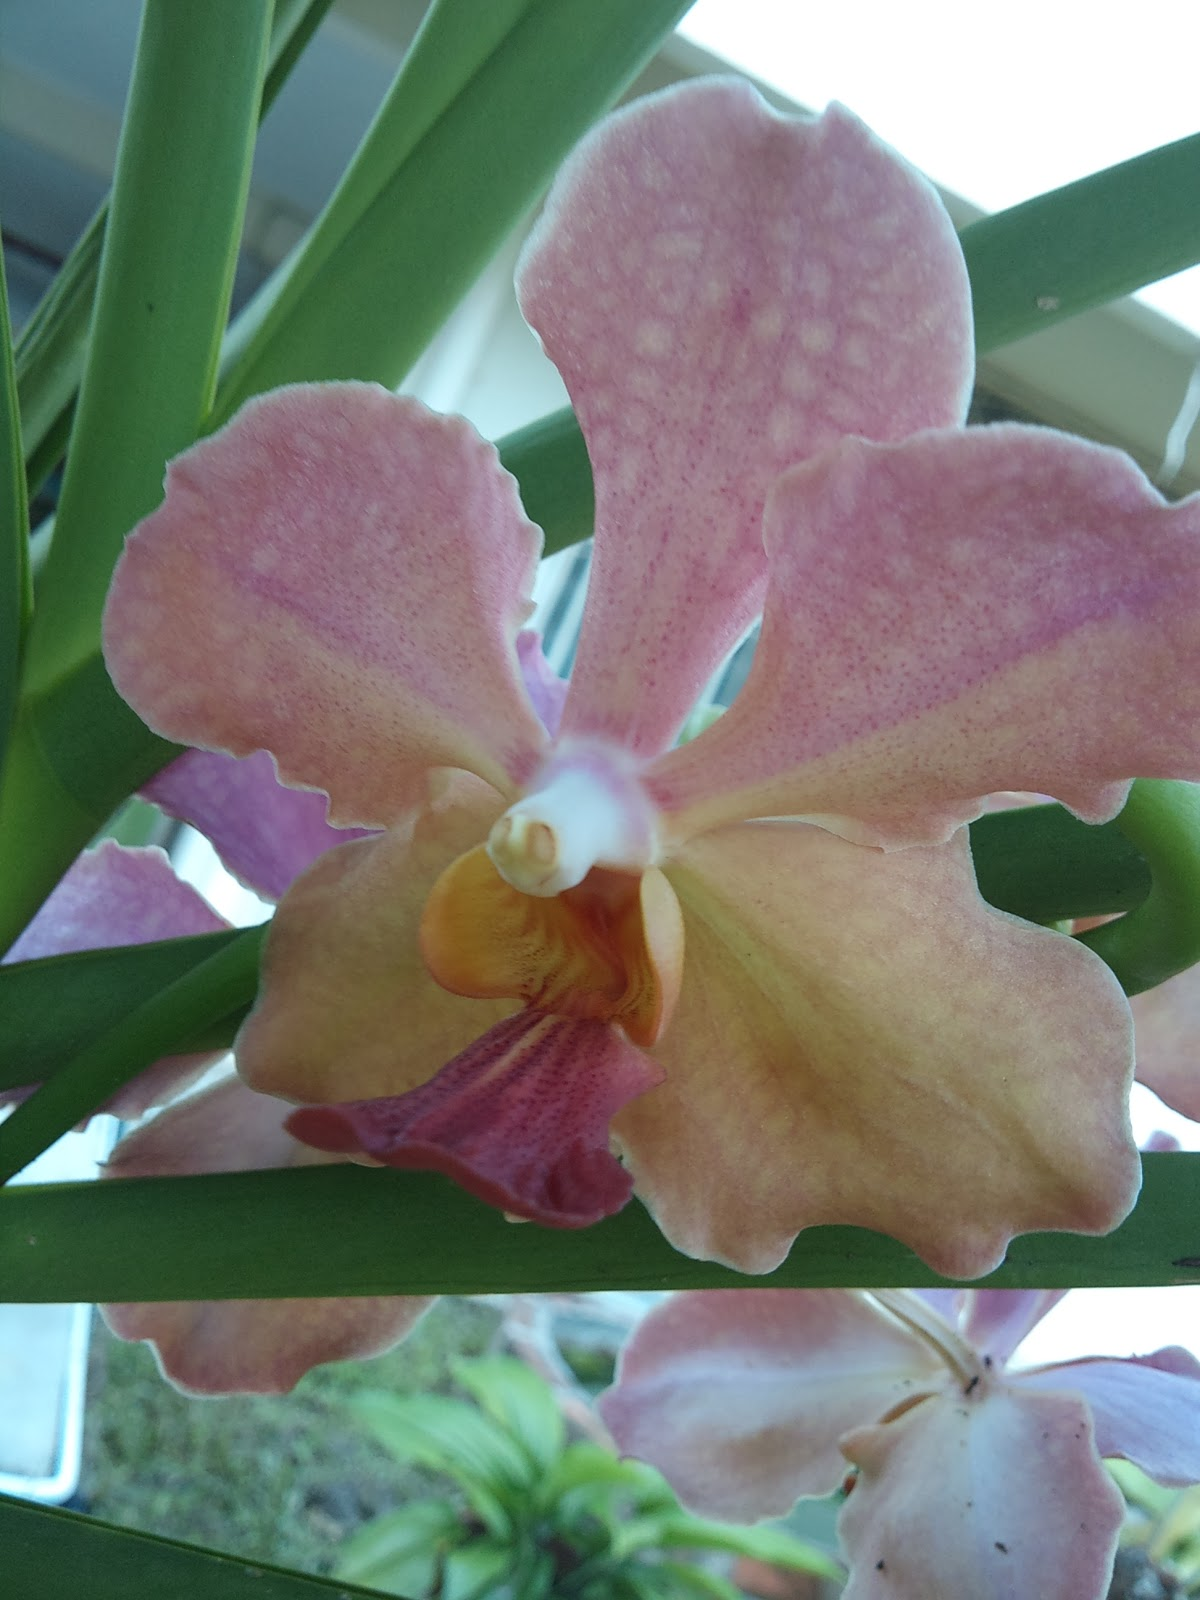 I Live In Kk Orchid Growing On Mango Tree